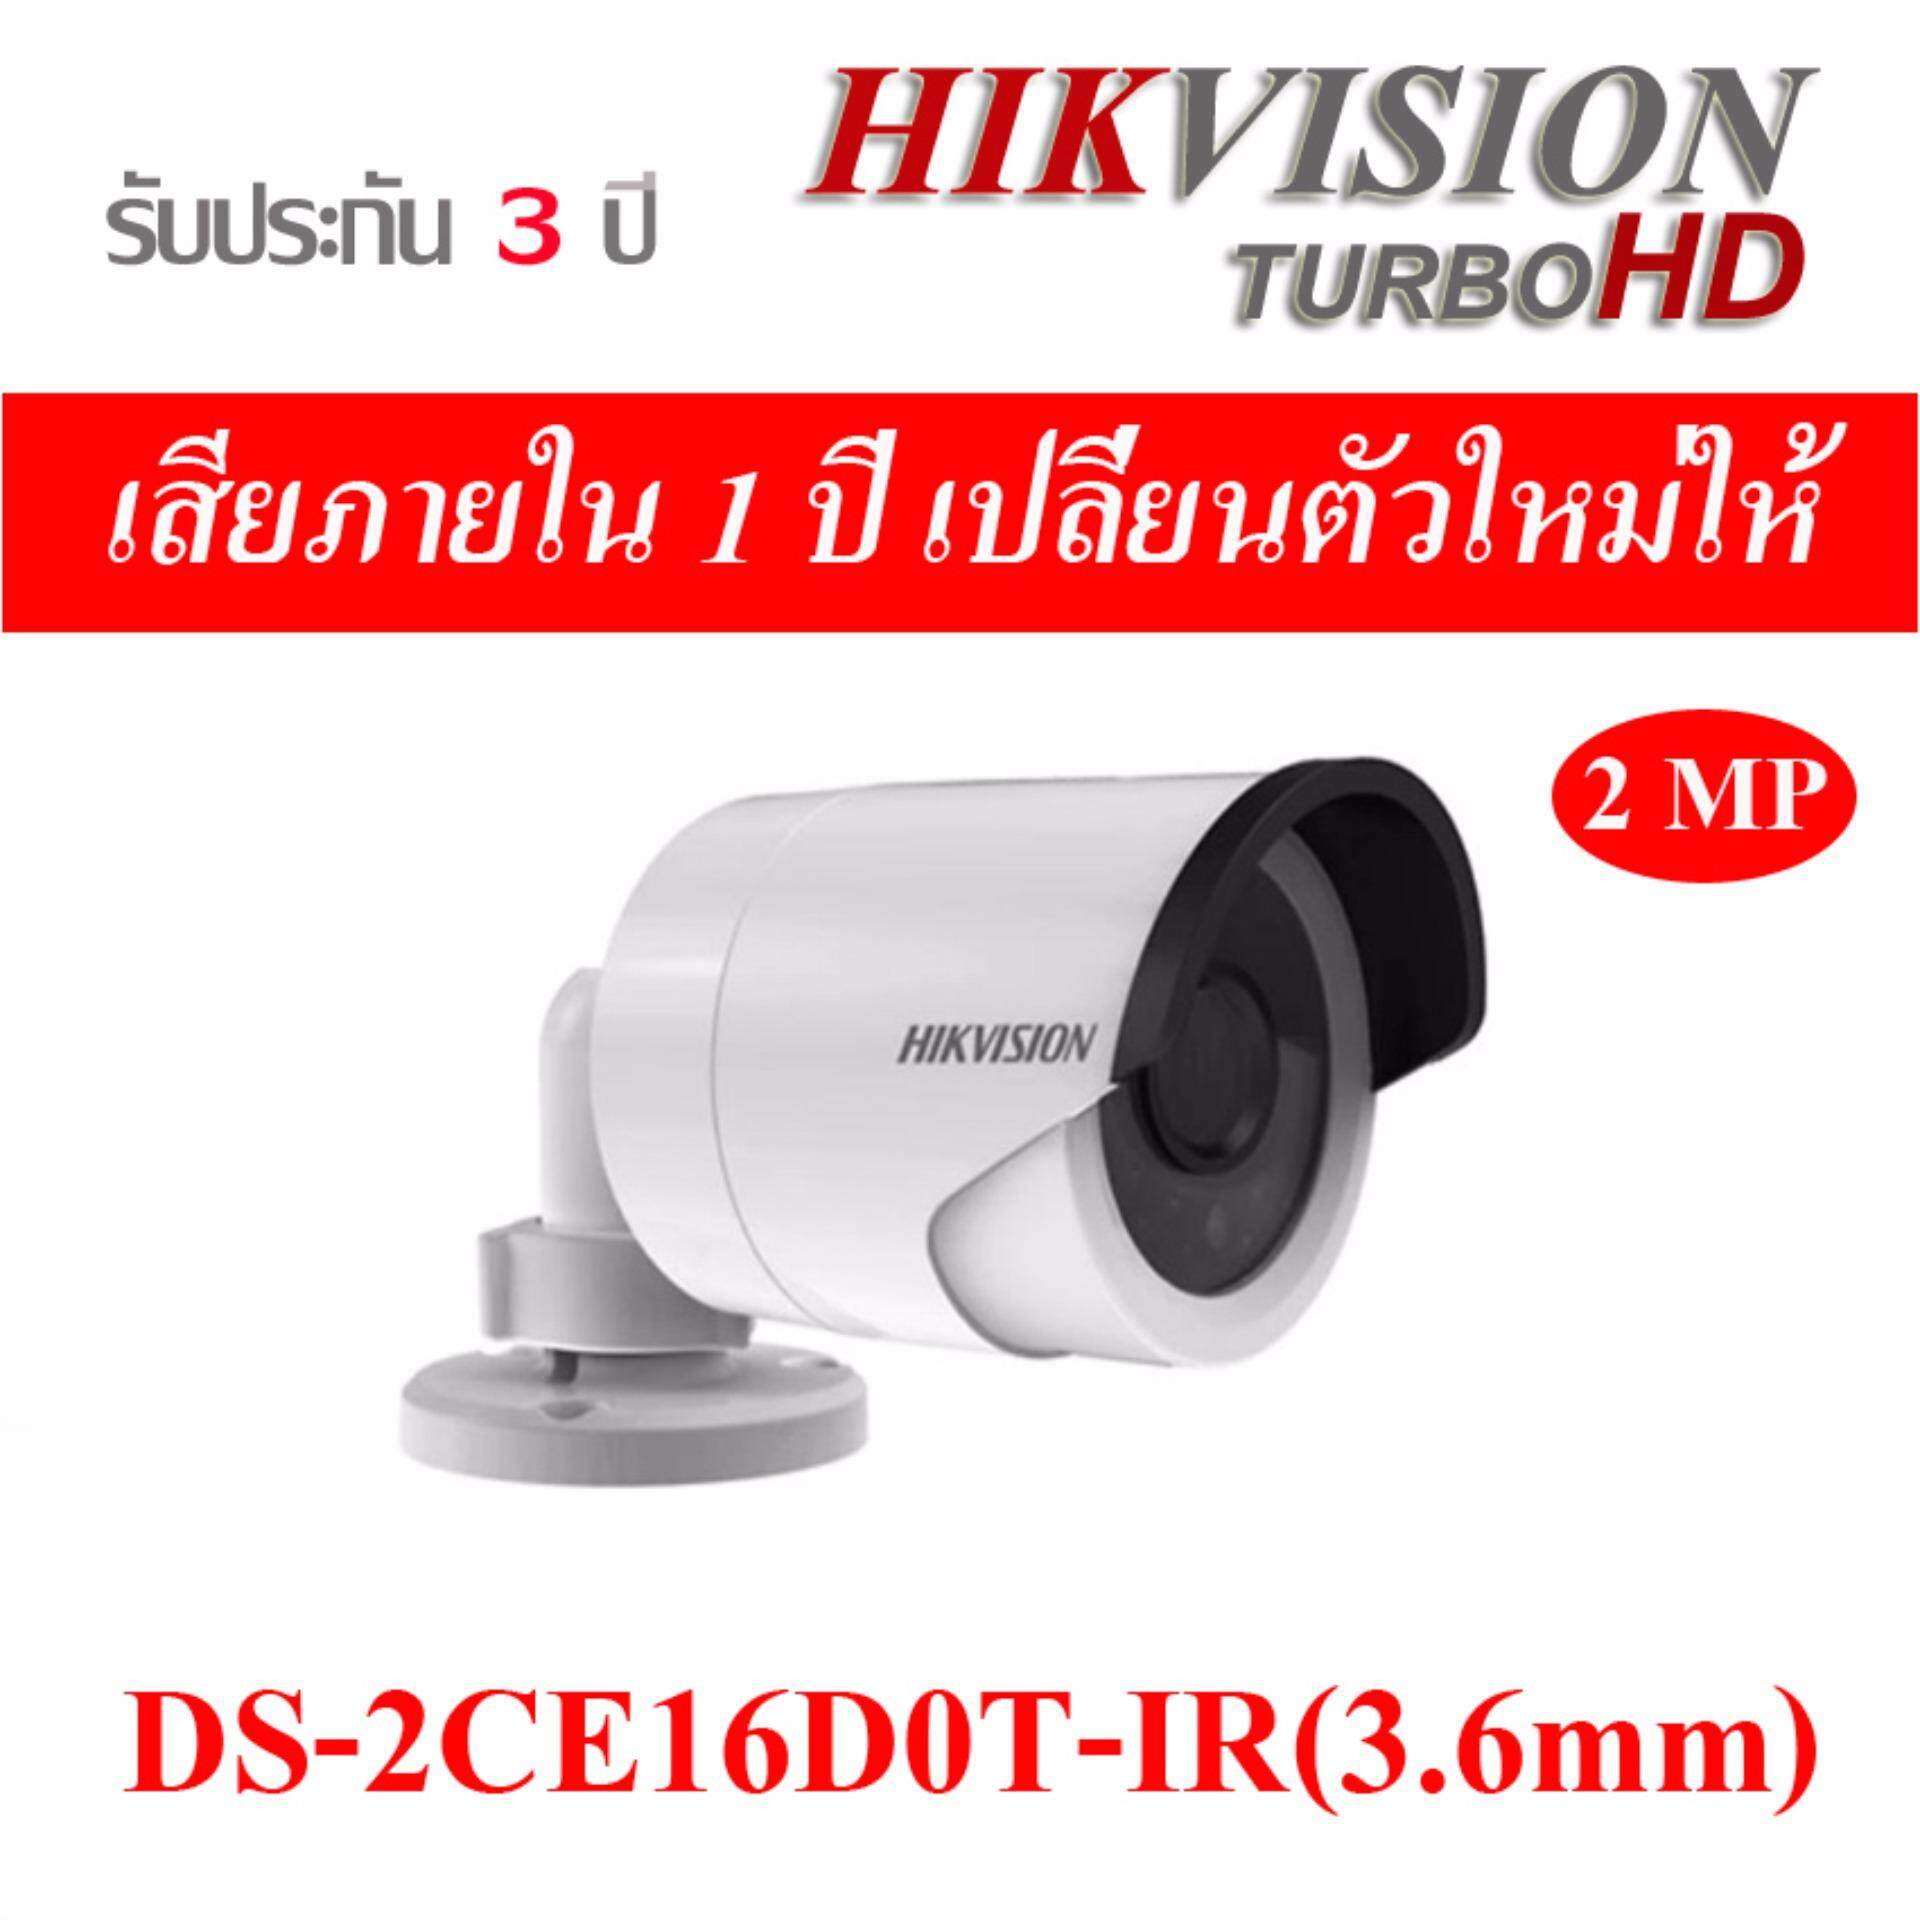 Hikvision HDTVI DS-2CE16D0T-IR 2MP Lens 3.6 mm